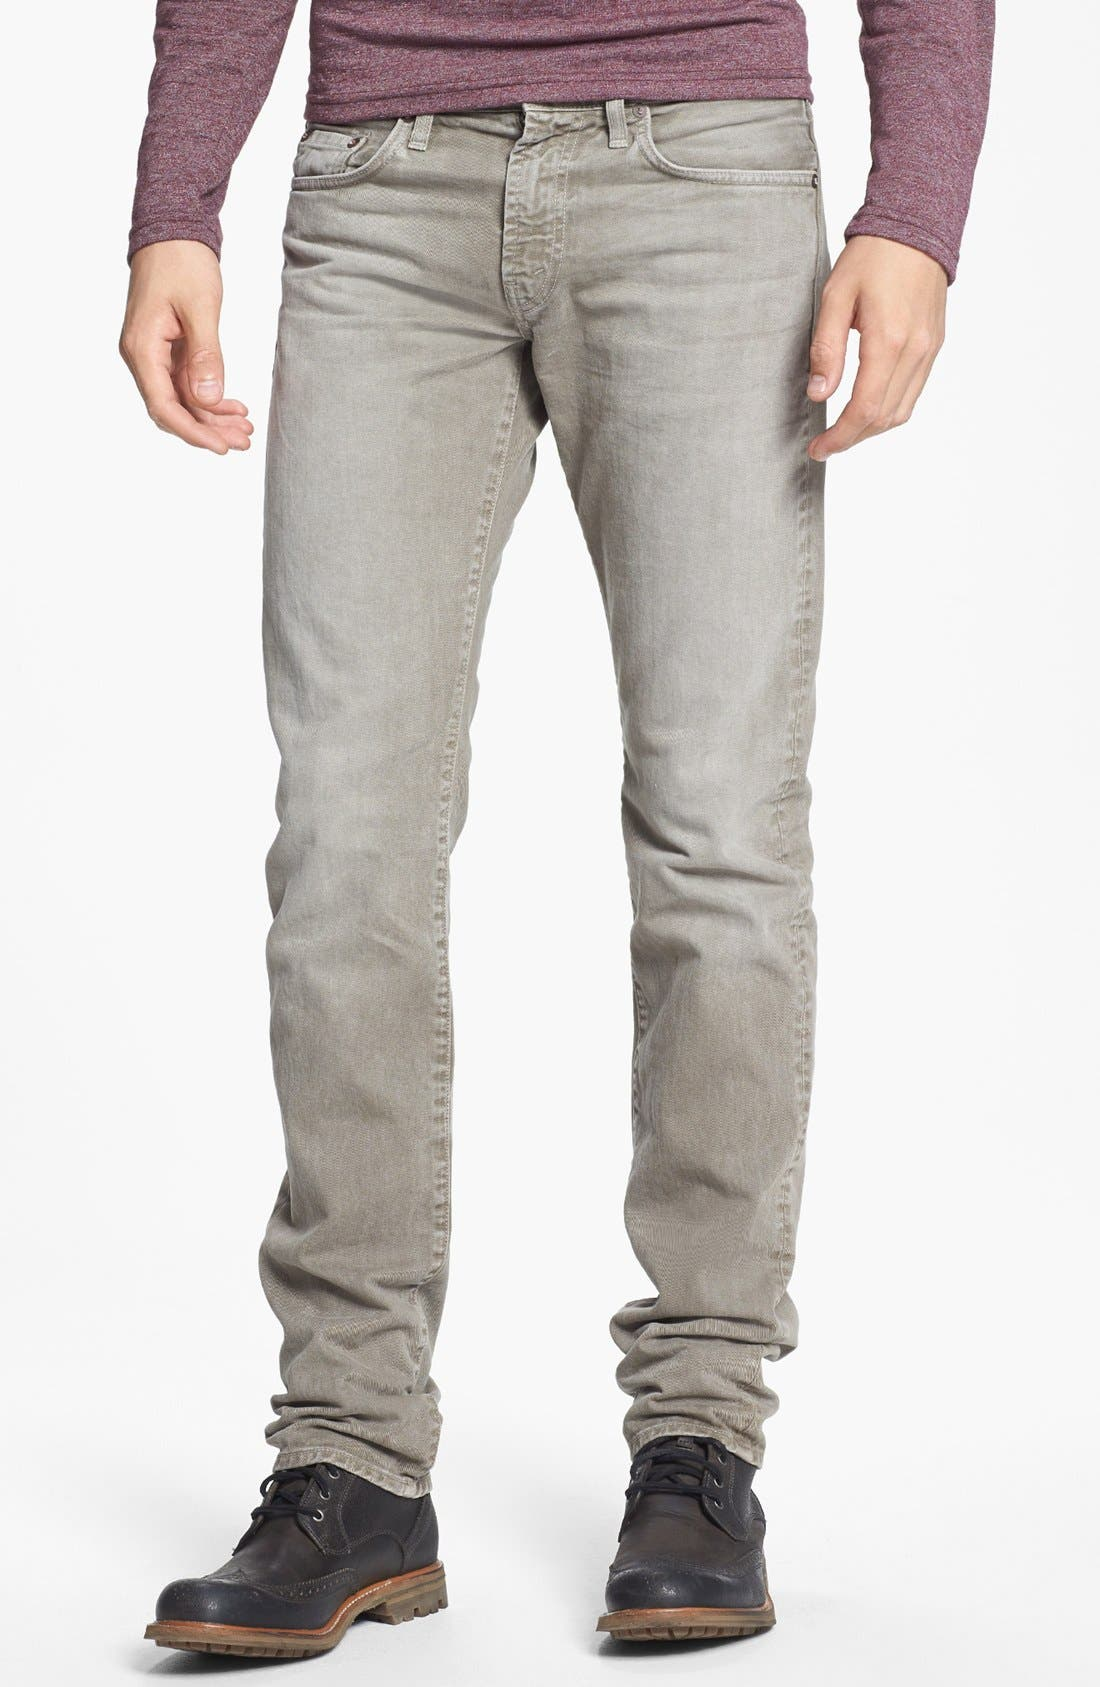 Alternate Image 1 Selected - J Brand 'Kane' Slim Fit Jeans (Washed Boulder)